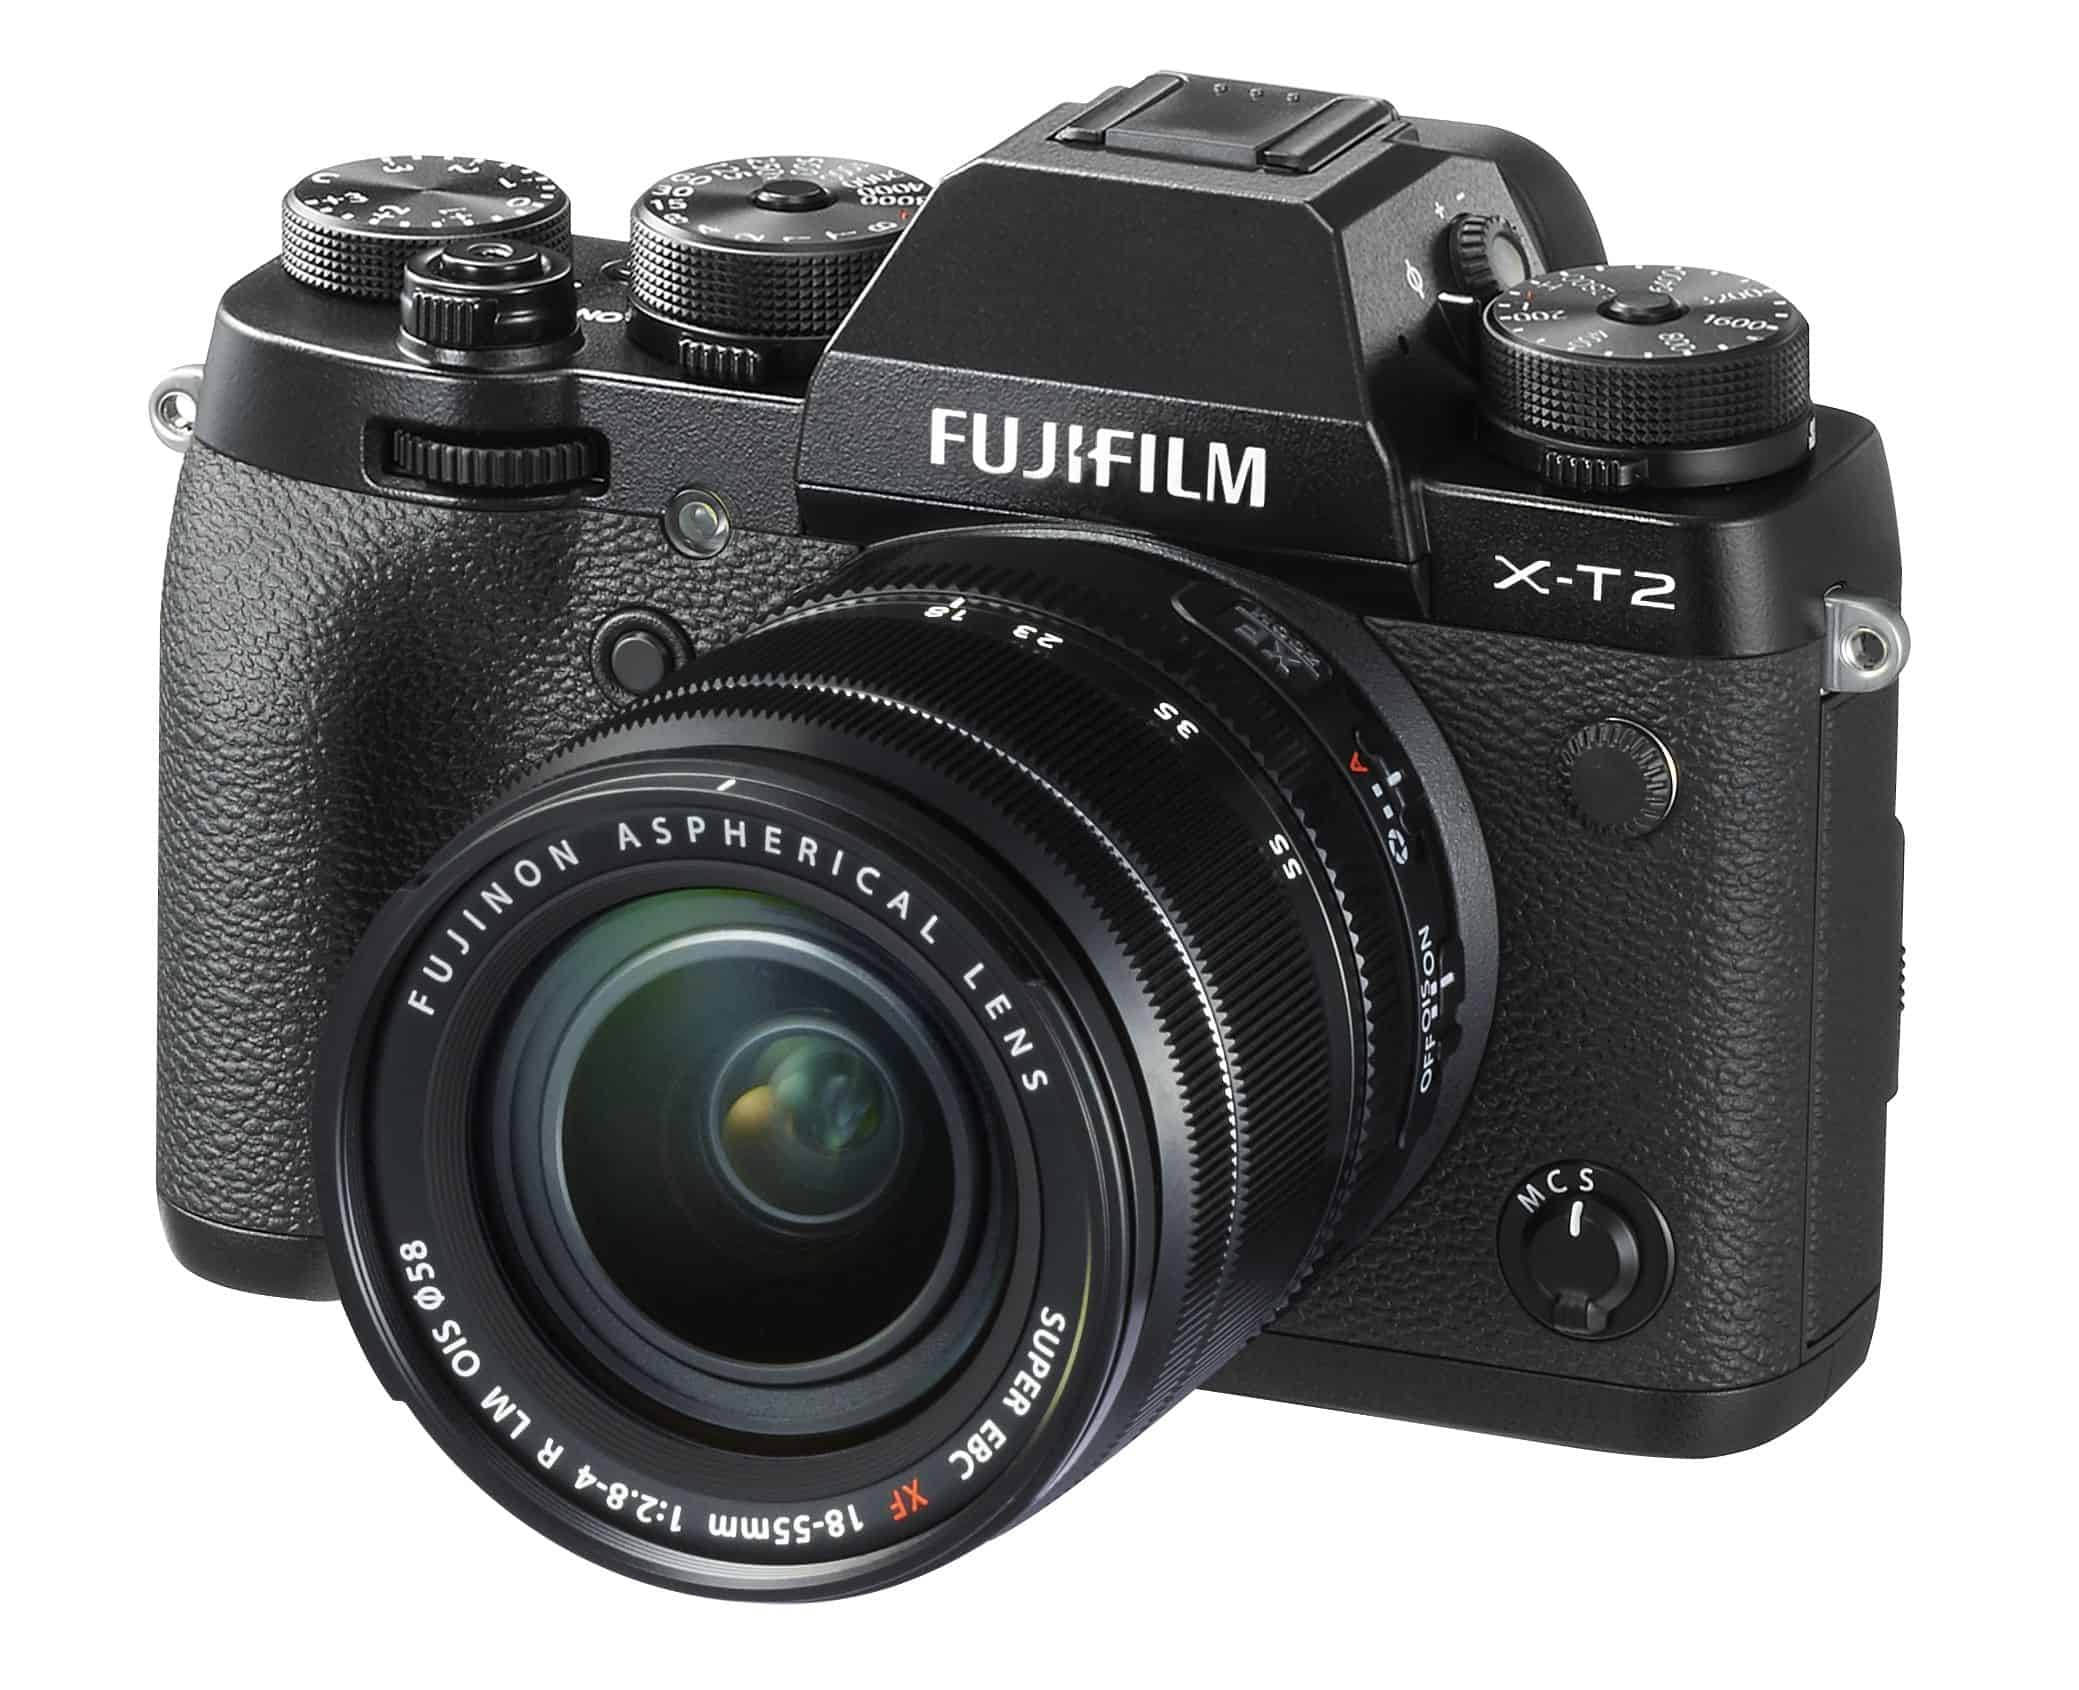 amazon Fujifilm X-T2 reviews Fujifilm X-T2 on amazon newest Fujifilm X-T2 prices of Fujifilm X-T2 Fujifilm X-T2 deals best deals on Fujifilm X-T2 buying a Fujifilm X-T2 lastest Fujifilm X-T2 what is a Fujifilm X-T2 Fujifilm X-T2 at amazon where to buy Fujifilm X-T2 where can i you get a Fujifilm X-T2 online purchase Fujifilm X-T2 Fujifilm X-T2 sale off Fujifilm X-T2 discount cheapest Fujifilm X-T2 Fujifilm X-T2 for sale Fujifilm X-T2 products Fujifilm X-T2 tutorial Fujifilm X-T2 specification Fujifilm X-T2 features Fujifilm X-T2 test Fujifilm X-T2 series Fujifilm X-T2 service manual Fujifilm X-T2 instructions Fujifilm X-T2 accessories fujifilm x-t2 release date wann kommt fujifilm x-t2 new fujifilm x-t2 nueva fujifilm x-t2 fujifilm x-t2 price fujifilm x-t2 pro fujifilm x-t2 prezzo rumors fujifilm x-t2 fujifilm x-t2 rumours fujifilm x-t2 review fujifilm x-t2 release fujifilm x-t2 specs fujifilm x-t1 vs x-t2 fujifilm x-t2 2015 fujifilm x-t2 2016 fujifilm x-t2 4k fujifilm x pro2 vs xt2 fujifilm x-t2 fujifilm x-t20 fujifilm x-t2 giá fujifilm x-t20 giá fujifilm x-t20 cũ fujifilm x-t2 cũ fujifilm x-t20 kit 16-50mm fujifilm xt20 vs xt2 fujifilm x-t2 đánh giá fujifilm x-t2 flickr fujifilm rumors x-t2 fujifilm x-t2 amazon fujifilm x-t2 accessories fujifilm x-t2 astrophotography fujifilm x-t2 australia fujifilm x-t2 autofocus fujifilm x-t2 amazon uk fujifilm x-t2 auto mode fujifilm x-t2 and x-t20 fujifilm x-t2 aed fujifilm x-t2 amazon jp fujifilm x-t2 battery fujifilm x-t2 body fujifilm x-t2 battery grip fujifilm x-t2 black friday fujifilm x-t2 best buy fujifilm x-t2 bundle fujifilm x-t2 body only fujifilm x-t2 battery life fujifilm x-t2 buy fujifilm x-t2 bluetooth fujifilm x-t2 dpreview fujifilm x-t2 dynamic range fujifilm x-t2 dxomark fujifilm x-t2 deals fujifilm x-t2 dubai fujifilm x-t2 dimensions fujifilm x-t2 dubai price fujifilm x-t2 dual macro led ring light / flash fujifilm x-t2 discount fujifilm x-t2 digitalrev fujifilm x-t2 ebay fujifilm x-t2 eyecup fujifilm x-t2 external recorder fujifilm x-t2 harga fujifilm xt2 hand grip fujifilm x-t2 hong kong price fujifilm x-t2 harvey norman fujifilm x-t2 hdr fujifilm x-t2 henry's fujifilm x-t2 how to use fujifilm x-t2 hss fujifilm x-t2 hinta fujifilm x-t2 images fujifilm x-t2 image stabilization fujifilm x-t2 iso fujifilm x-t2 image quality fujifilm x-t2 india fujifilm x-t2 ibis fujifilm x-t2 ir fujifilm x-t2 ireland fujifilm x-t2 infrared fujifilm x-t2 iso 100 fujifilm x-t2 japan fujifilm x-t2 jessops fujifilm x-t2 kit fujifilm x-t2 kit lens fujifilm xt2 ken rockwell fujifilm x-t2 kijiji fujifilm x-t2 kit 18-55mm fujifilm x-t2 lenses fujifilm x-t2 low light fujifilm x-t2 lazada fujifilm x-t2 leather case fujifilm xt2 landscape photography fujifilm x-t2 landscape fujifilm x-t2 lens mount fujifilm x-t2 latest firmware fujifilm x-t2 lightroom fujifilm x-t2 l bracket fujifilm x-t2 mirrorless digital camera fujifilm x-t2 manual fujifilm x-t2 mirrorless digital camera with 18-55mm lens fujifilm x-t2 mirrorless digital camera with 18-55mm f2.8-4.0 r lm ois lens fujifilm x-t2 mirrorless digital camera (body only) fujifilm x-t2 malaysia price fujifilm x-t2 mirrorless digital camera body - graphite silver fujifilm x-t2 mirrorless digital camera body fujifilm x-t2 mirrorless digital camera review fujifilm x-t2 mount fujifilm x-t2 nz fujifilm x-t2 night photography fujifilm x-t2 nikon lenses fujifilm x-t2 news fujifilm x-t2 owners manual fujifilm x-t2 or x-t20 fujifilm x-t2 olx fujifilm x-t2 open box fujifilm x-t2 objektive fujifilm x-t2 or x-pro2 fujifilm x-t2 or sony a7ii fujifilm x-t2 price philippines fujifilm x-t2 photos fujifilm x-t2 price in india fujifilm x-t2 price malaysia fujifilm x-t2 price in uae fujifilm x-t2 price hk fujifilm x-t2 price in pakistan fujifilm x-t2 price australia fujifilm x-t2 price in ksa fujifilm x-t2 review dpreview fujifilm x-t2 refurbished fujifilm x-t2 review 2017 fujifilm x-t2 reddit fujifilm x-t2 raw fujifilm x-t2 reliability fujifilm xt2 remote release fujifilm x-t2 review youtube fujifilm x-t2 silver fujifilm x-t2 sample images fujifilm x-t2 sale fujifilm x-t2 singapore fujifilm x-t2 sensor size fujifilm x-t2 settings fujifilm x-t2 south africa fujifilm x-t2 strap fujifilm x-t2 sample fujifilm x-t2 tutorial fujifilm x-t2 touch screen fujifilm x-t2 timelapse fujifilm x-t2 tethering fujifilm x-t2 tips fujifilm x-t2 tips and tricks fujifilm x-t2 test fujifilm x-t2 used fujifilm x-t2 update fujifilm x-t2 user manual fujifilm x-t2 uk fujifilm x-t2 uae fujifilm x-t2 used for sale fujifilm x-t2 unboxing fujifilm x-t2 usb charging fujifilm xt2 underwater housing fujifilm x-t2 user guide fujifilm x-t2 vs x-t20 fujifilm x-t2 vs sony a6500 fujifilm x-t2 vs sony a7ii fujifilm x-t2 video fujifilm x-t2 vs sony a7rii fujifilm x-t2 vs x-pro2 fujifilm x-t2 vertical power booster grip fujifilm x-t2 vs x-e3 fujifilm x-t2 vs sony a7 fujifilm x-t2 vs nikon d750 fujifilm x-t2 weight fujifilm x-t2 wiki fujifilm x-t2 wifi fujifilm x-t2 with 18-55mm fujifilm x-t2 wedding fujifilm x-t2 wireless fujifilm x-t2 waterproof housing fujifilm x-t2 walmart fujifilm x-t2 with 18-55mm lens fujifilm x-t2 weather sealed fujifilm x-t2 x-t20 fujifilm x-t2 youtube fujifilm x-t2 zap fujifilm x-t2 18-55mm fujifilm x-t2 18-55 fujifilm x-t2 18-135 fujifilm x-t2 24.3 mp mirrorless ultra hd digital camera fujifilm x-t2 35mm fujifilm x-t2 4k video fujifilm x-t2 500px